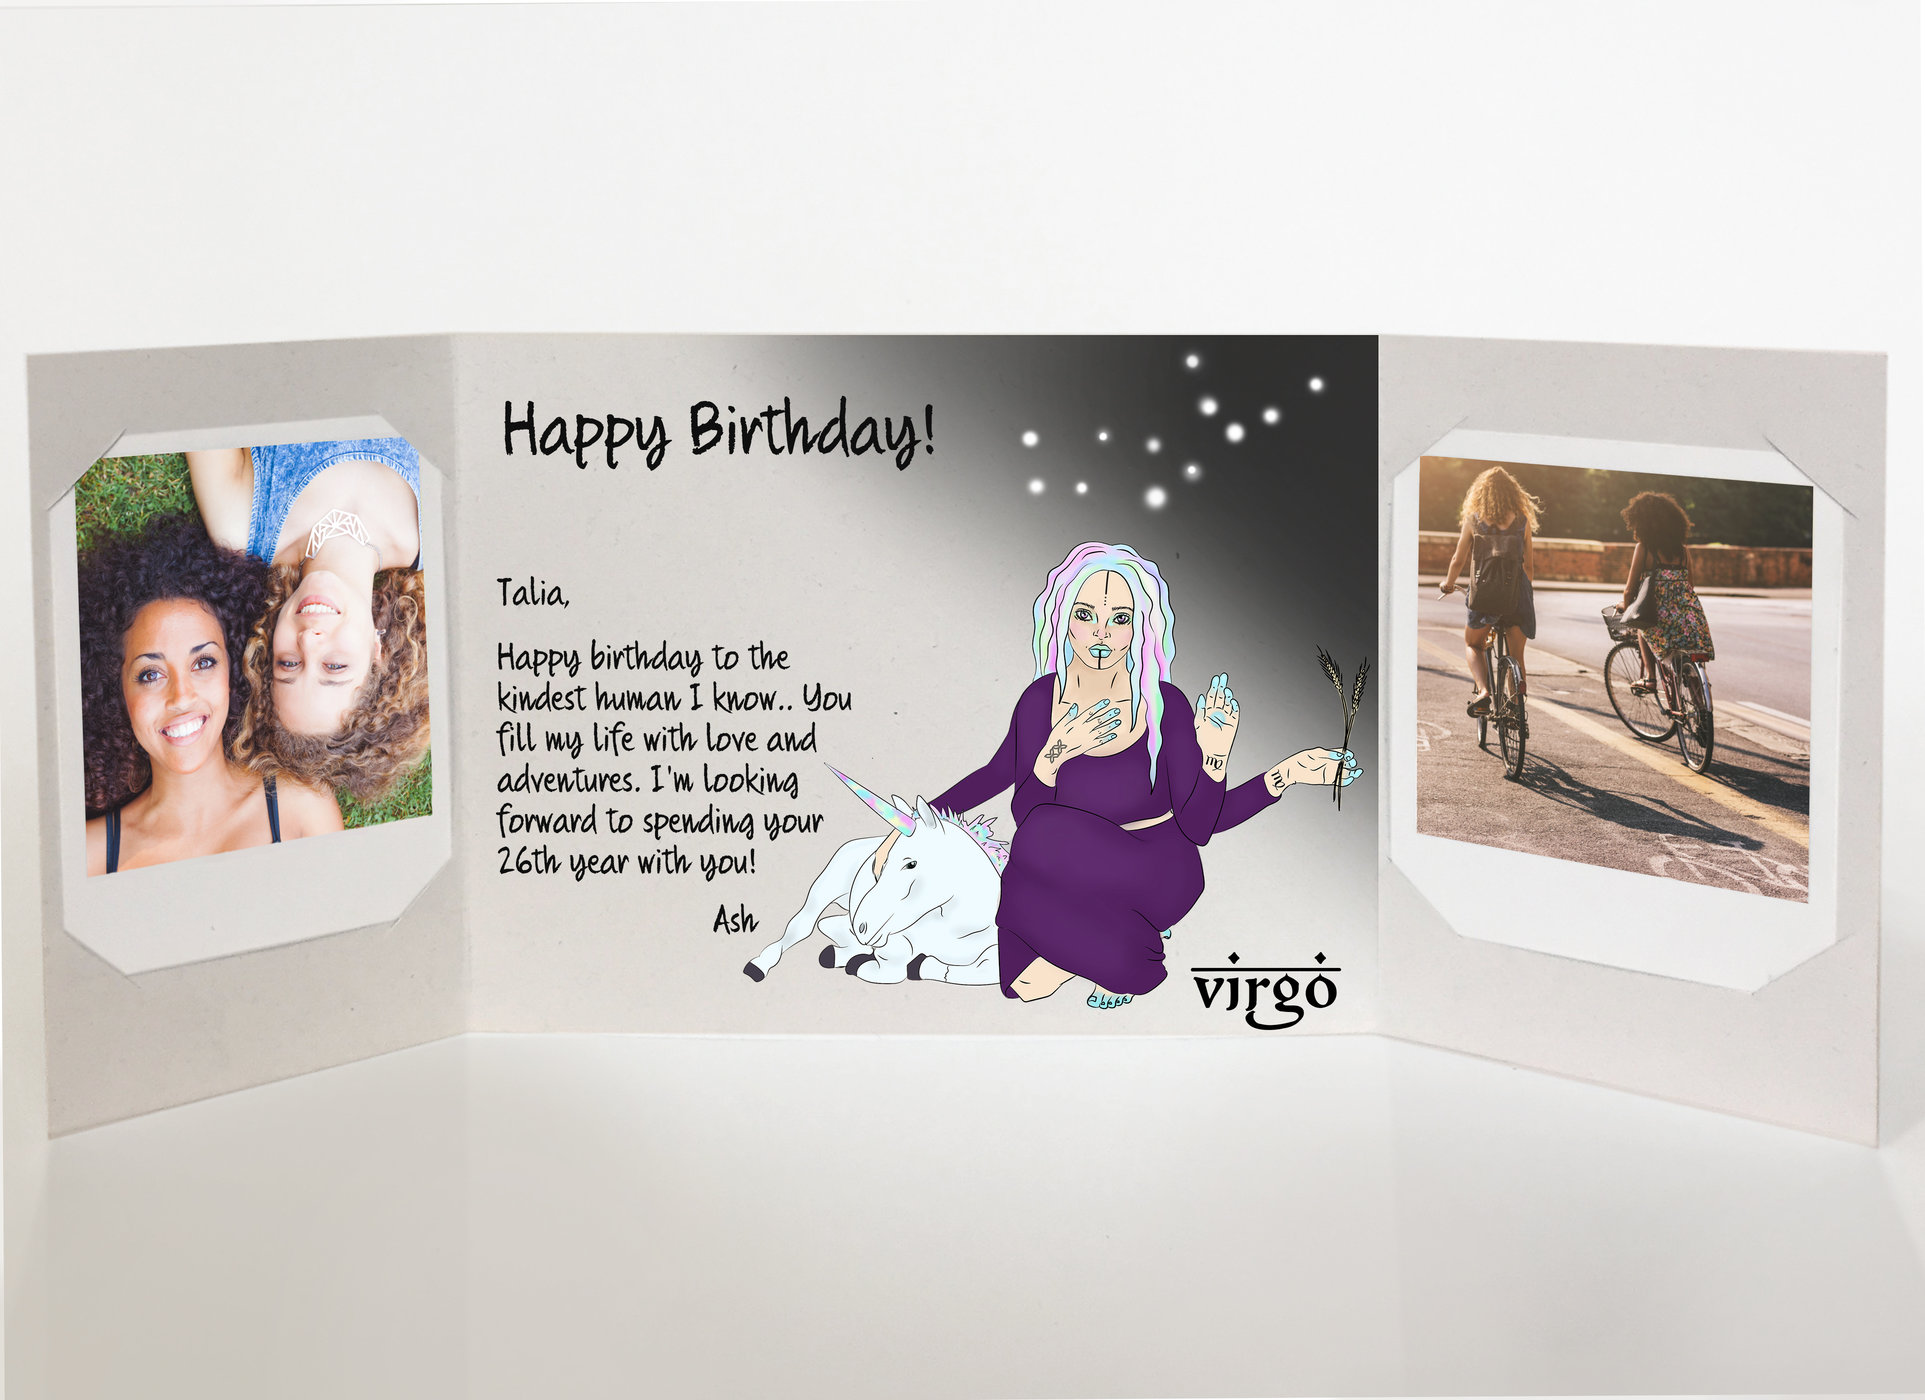 How to send a birthday card Easily?